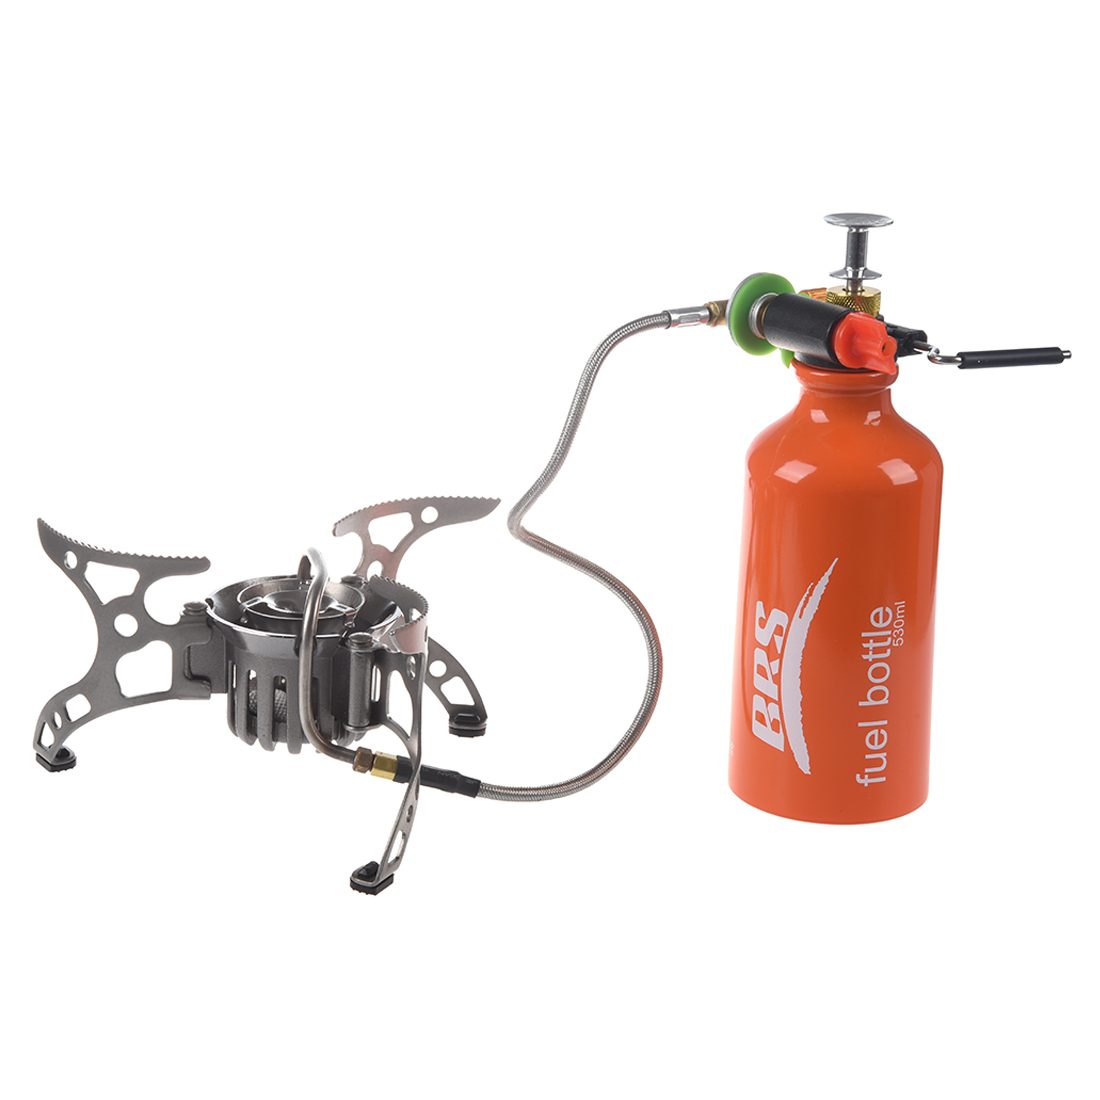 Outdoor Camping Multi-fuel Stove Backpacking Cookware Cooking Picnic Stove Oil Gas Furnace for camping,hiking brs portable multi fuel outdoor backpacking camping picnic stove oil gas furnace brs 8